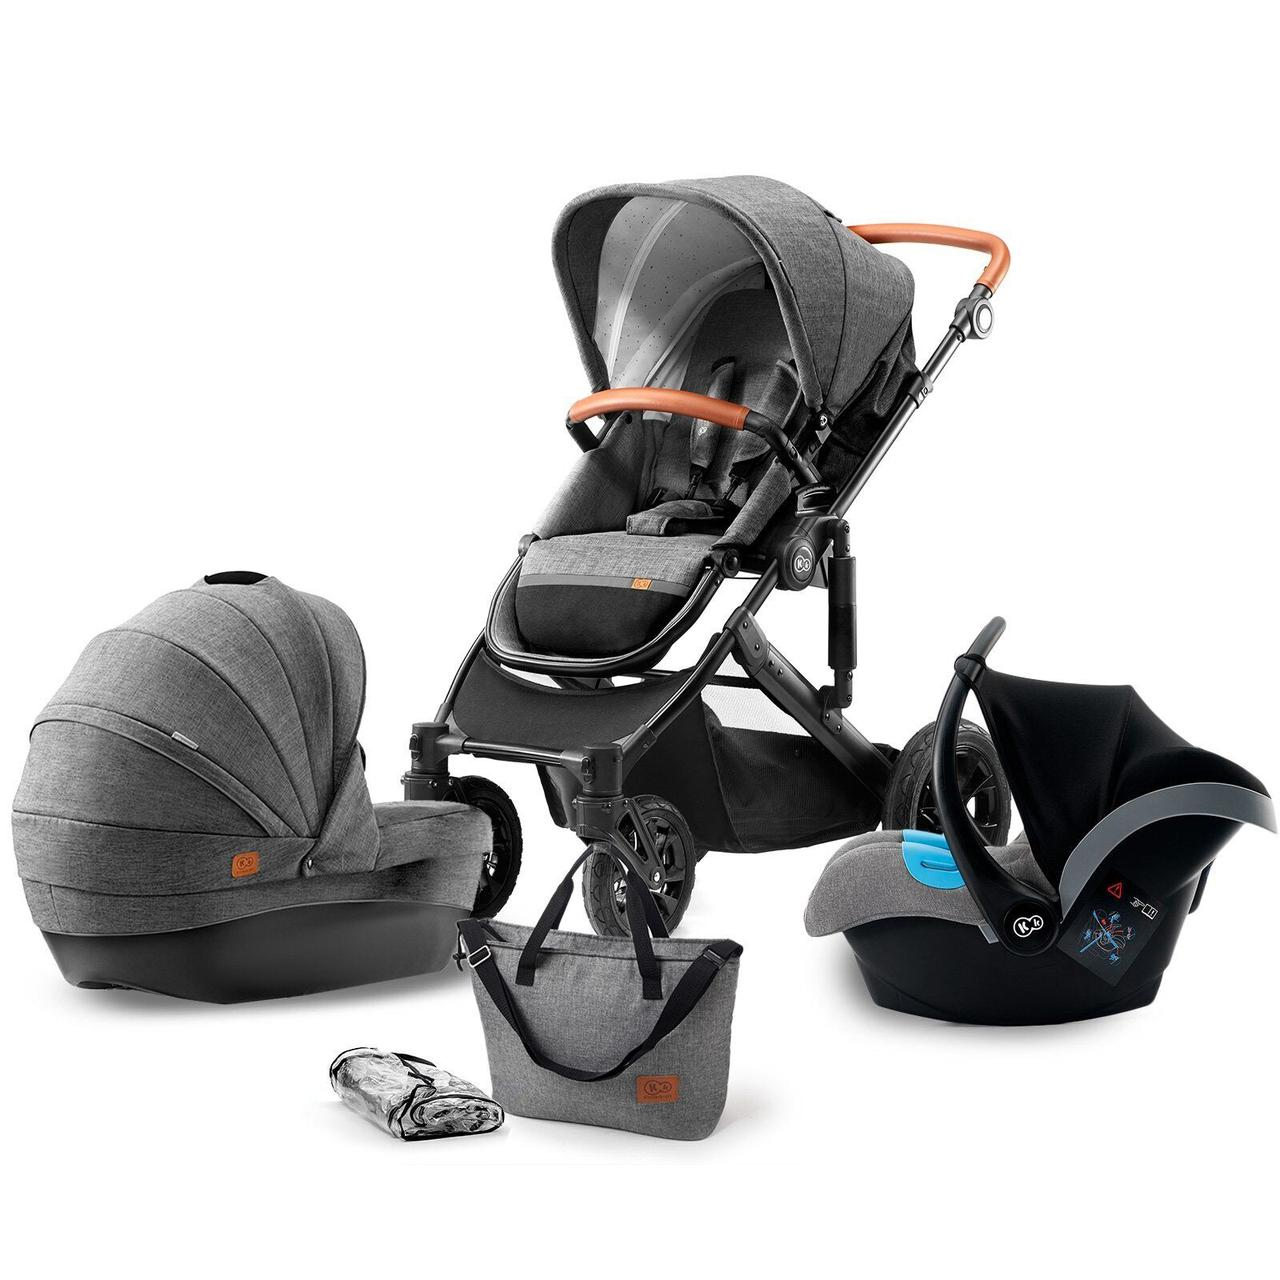 Коляска Kinderkraft Prime Gray 3в1 серая